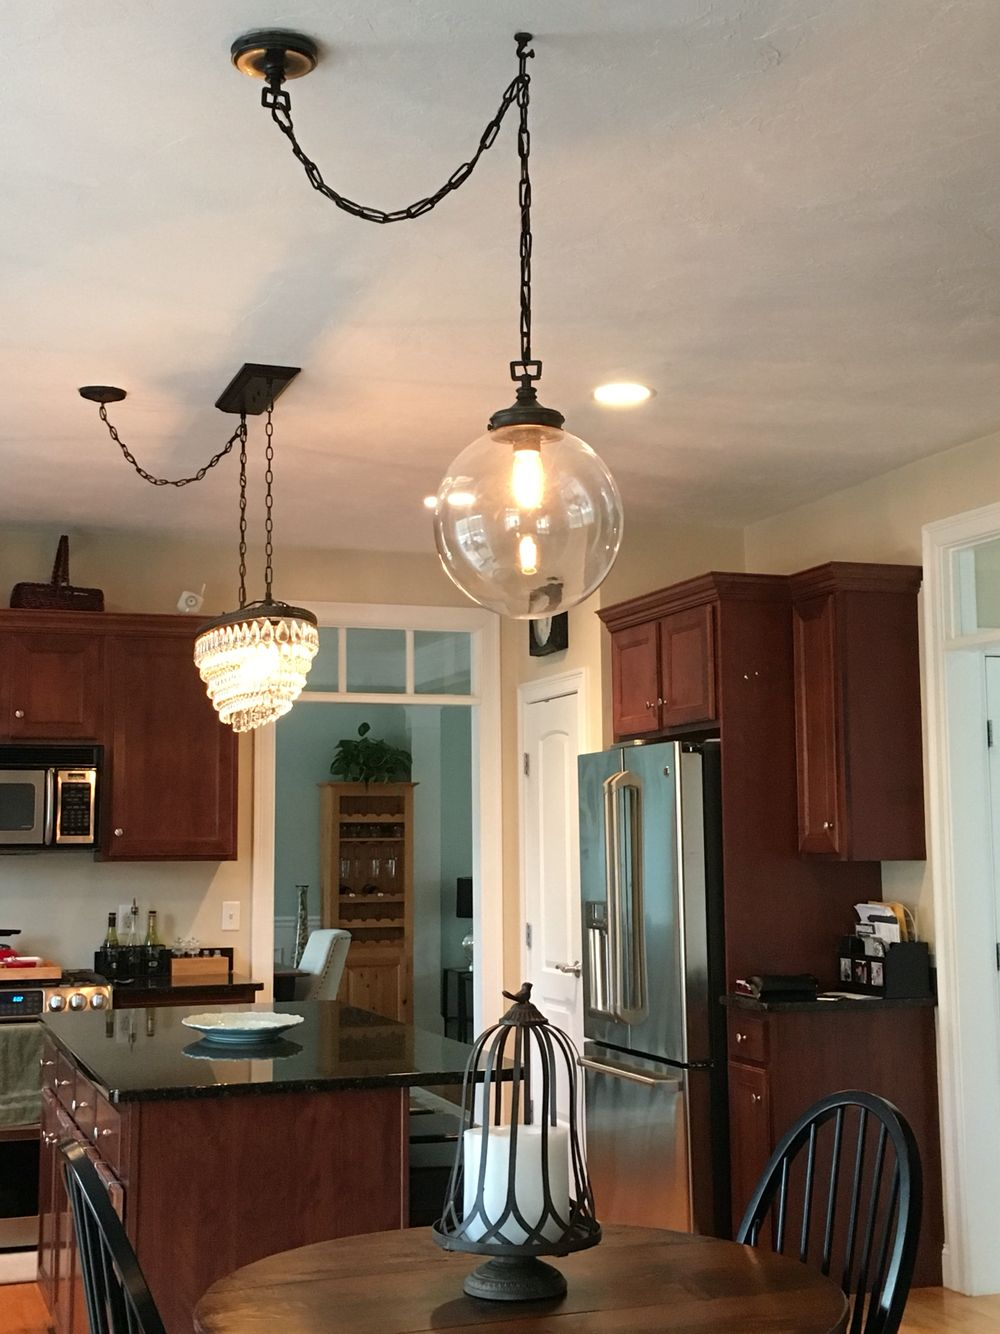 Solution For Off Centered Chandeliers Clearly When My House Was Ceiling Canopy Pendant Light Kits On Kit Wiring Built The Electrical Done Before Island Placed Result That Were Way Center